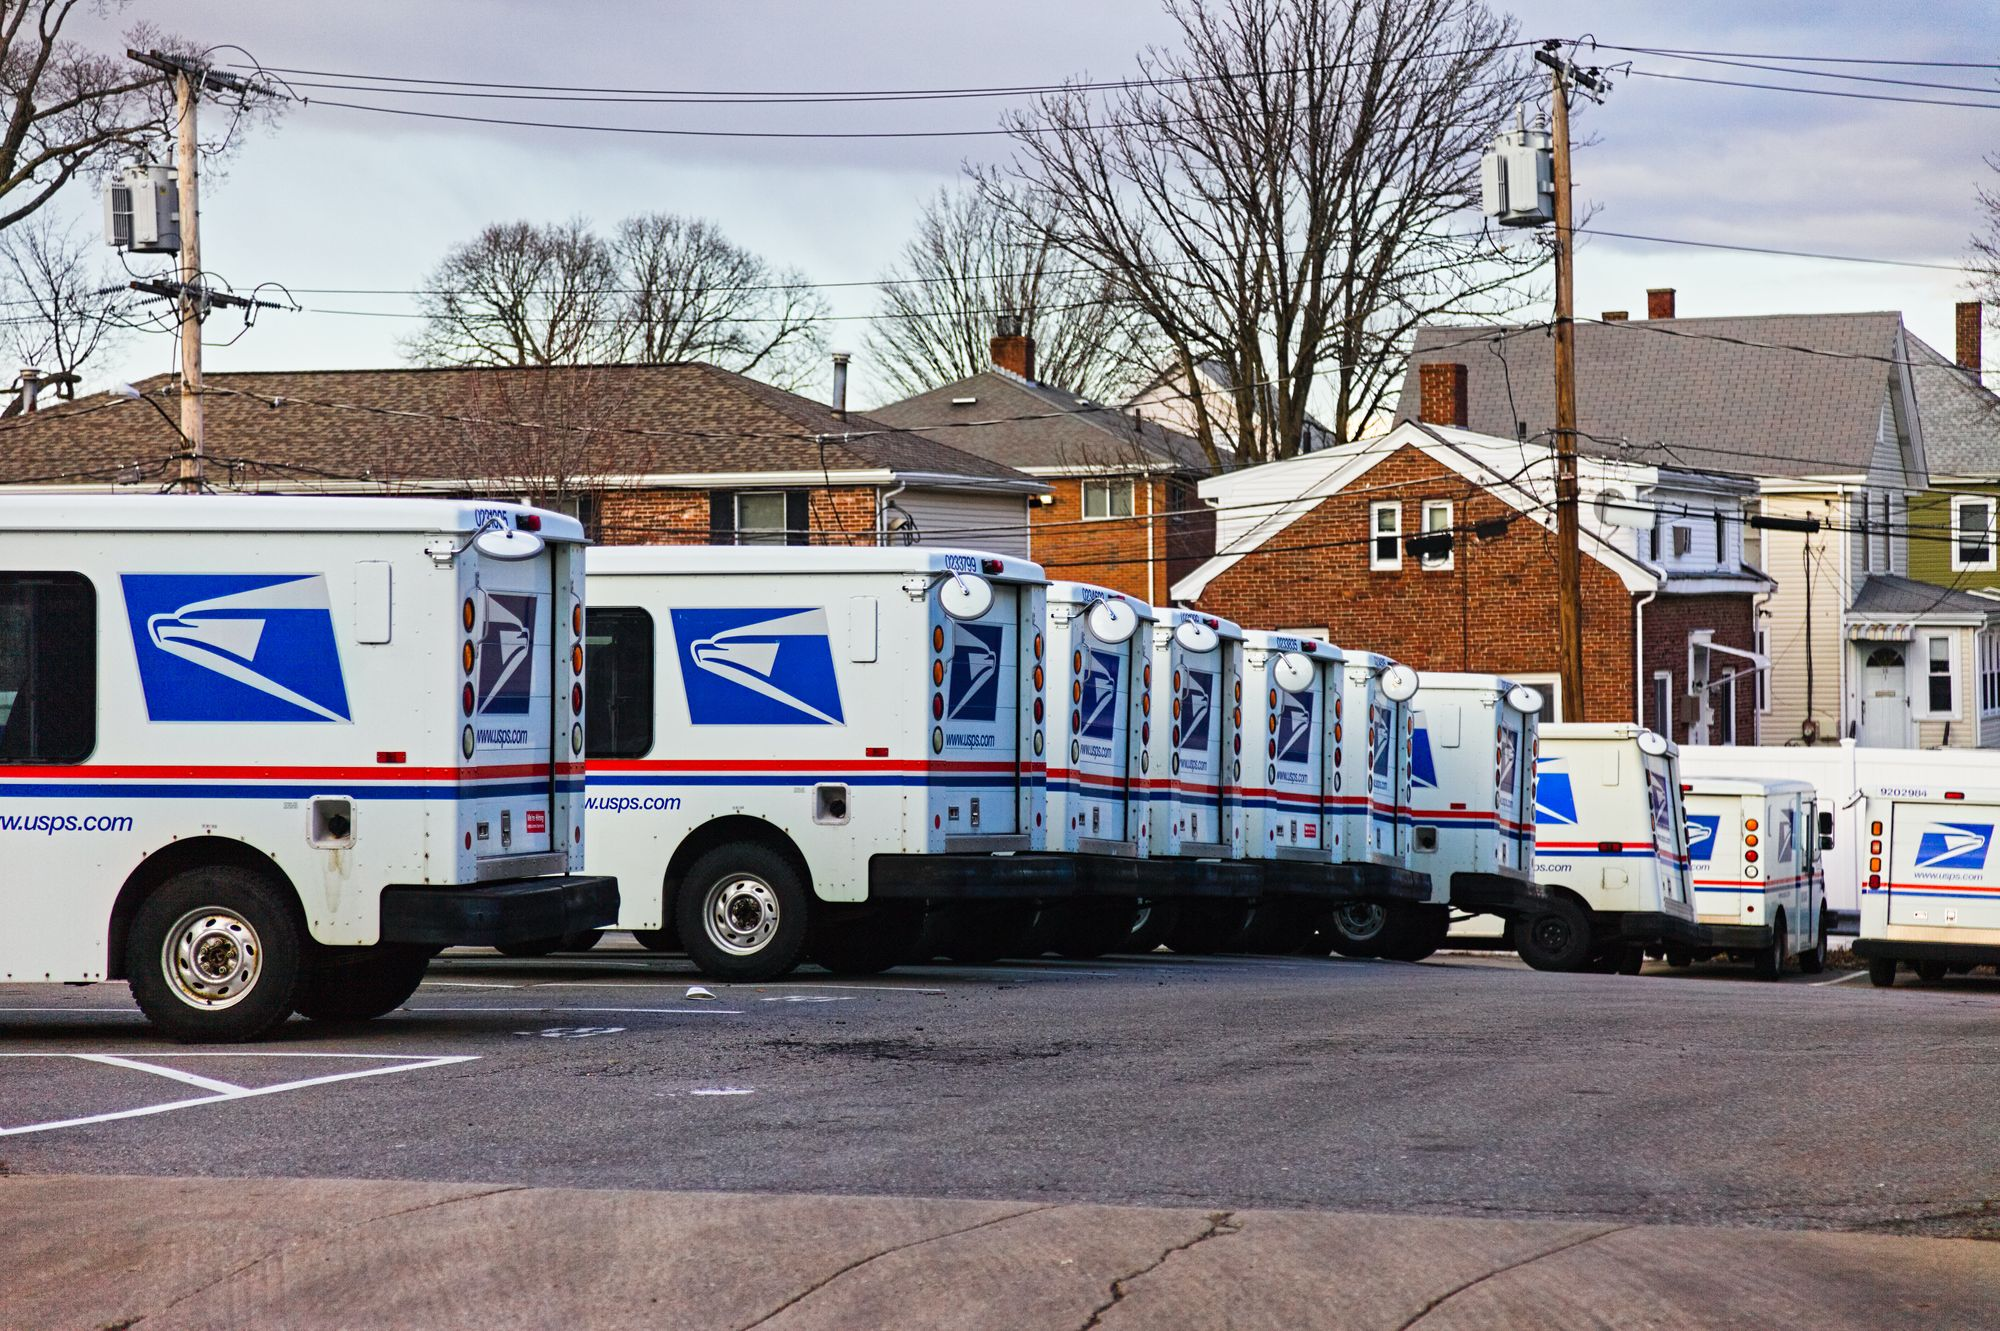 USPS Saturday and Sunday Delivery Trucks